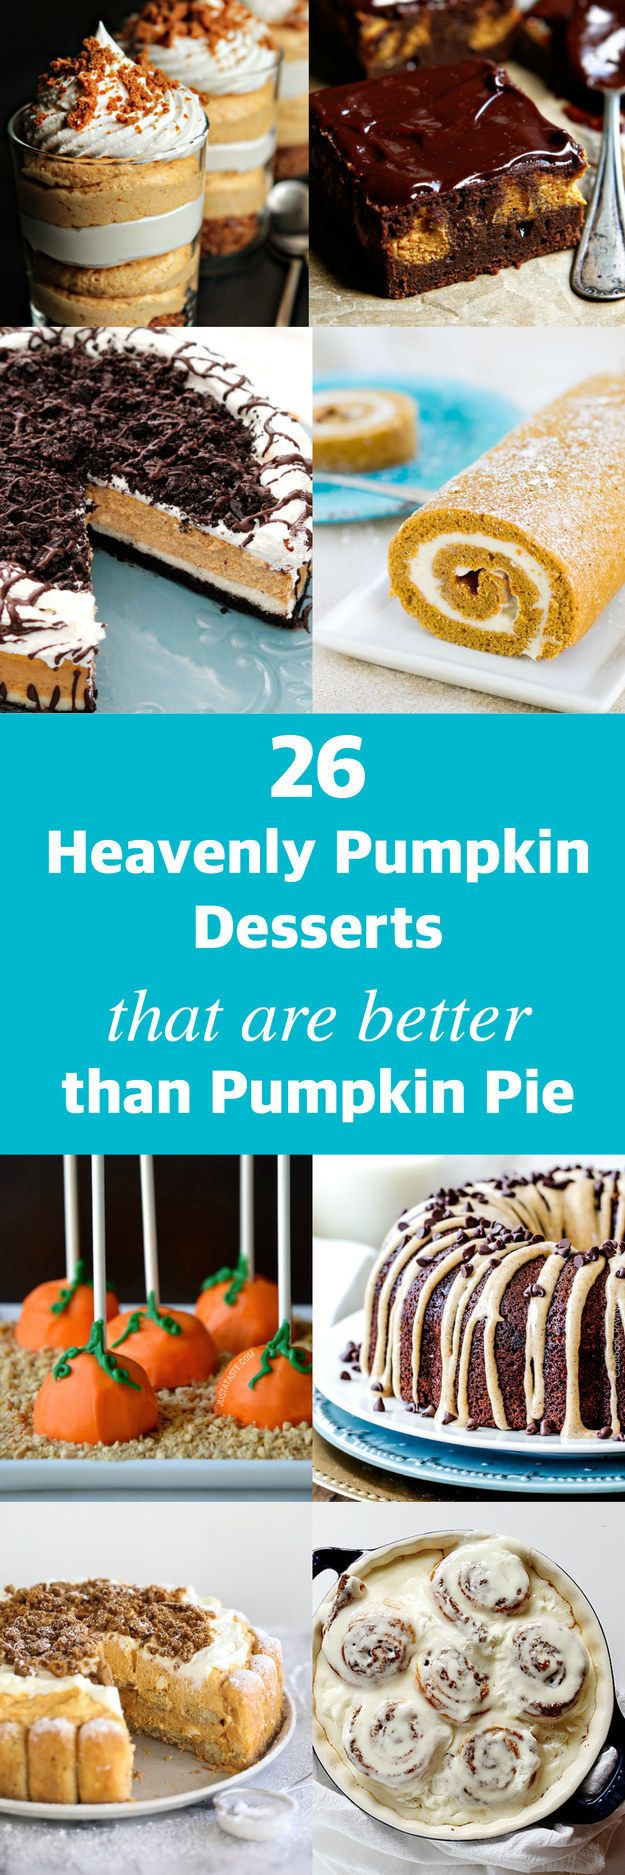 Community Post: 26 Heavenly Pumpkin Desserts That Are Better Than Pumpkin Pie